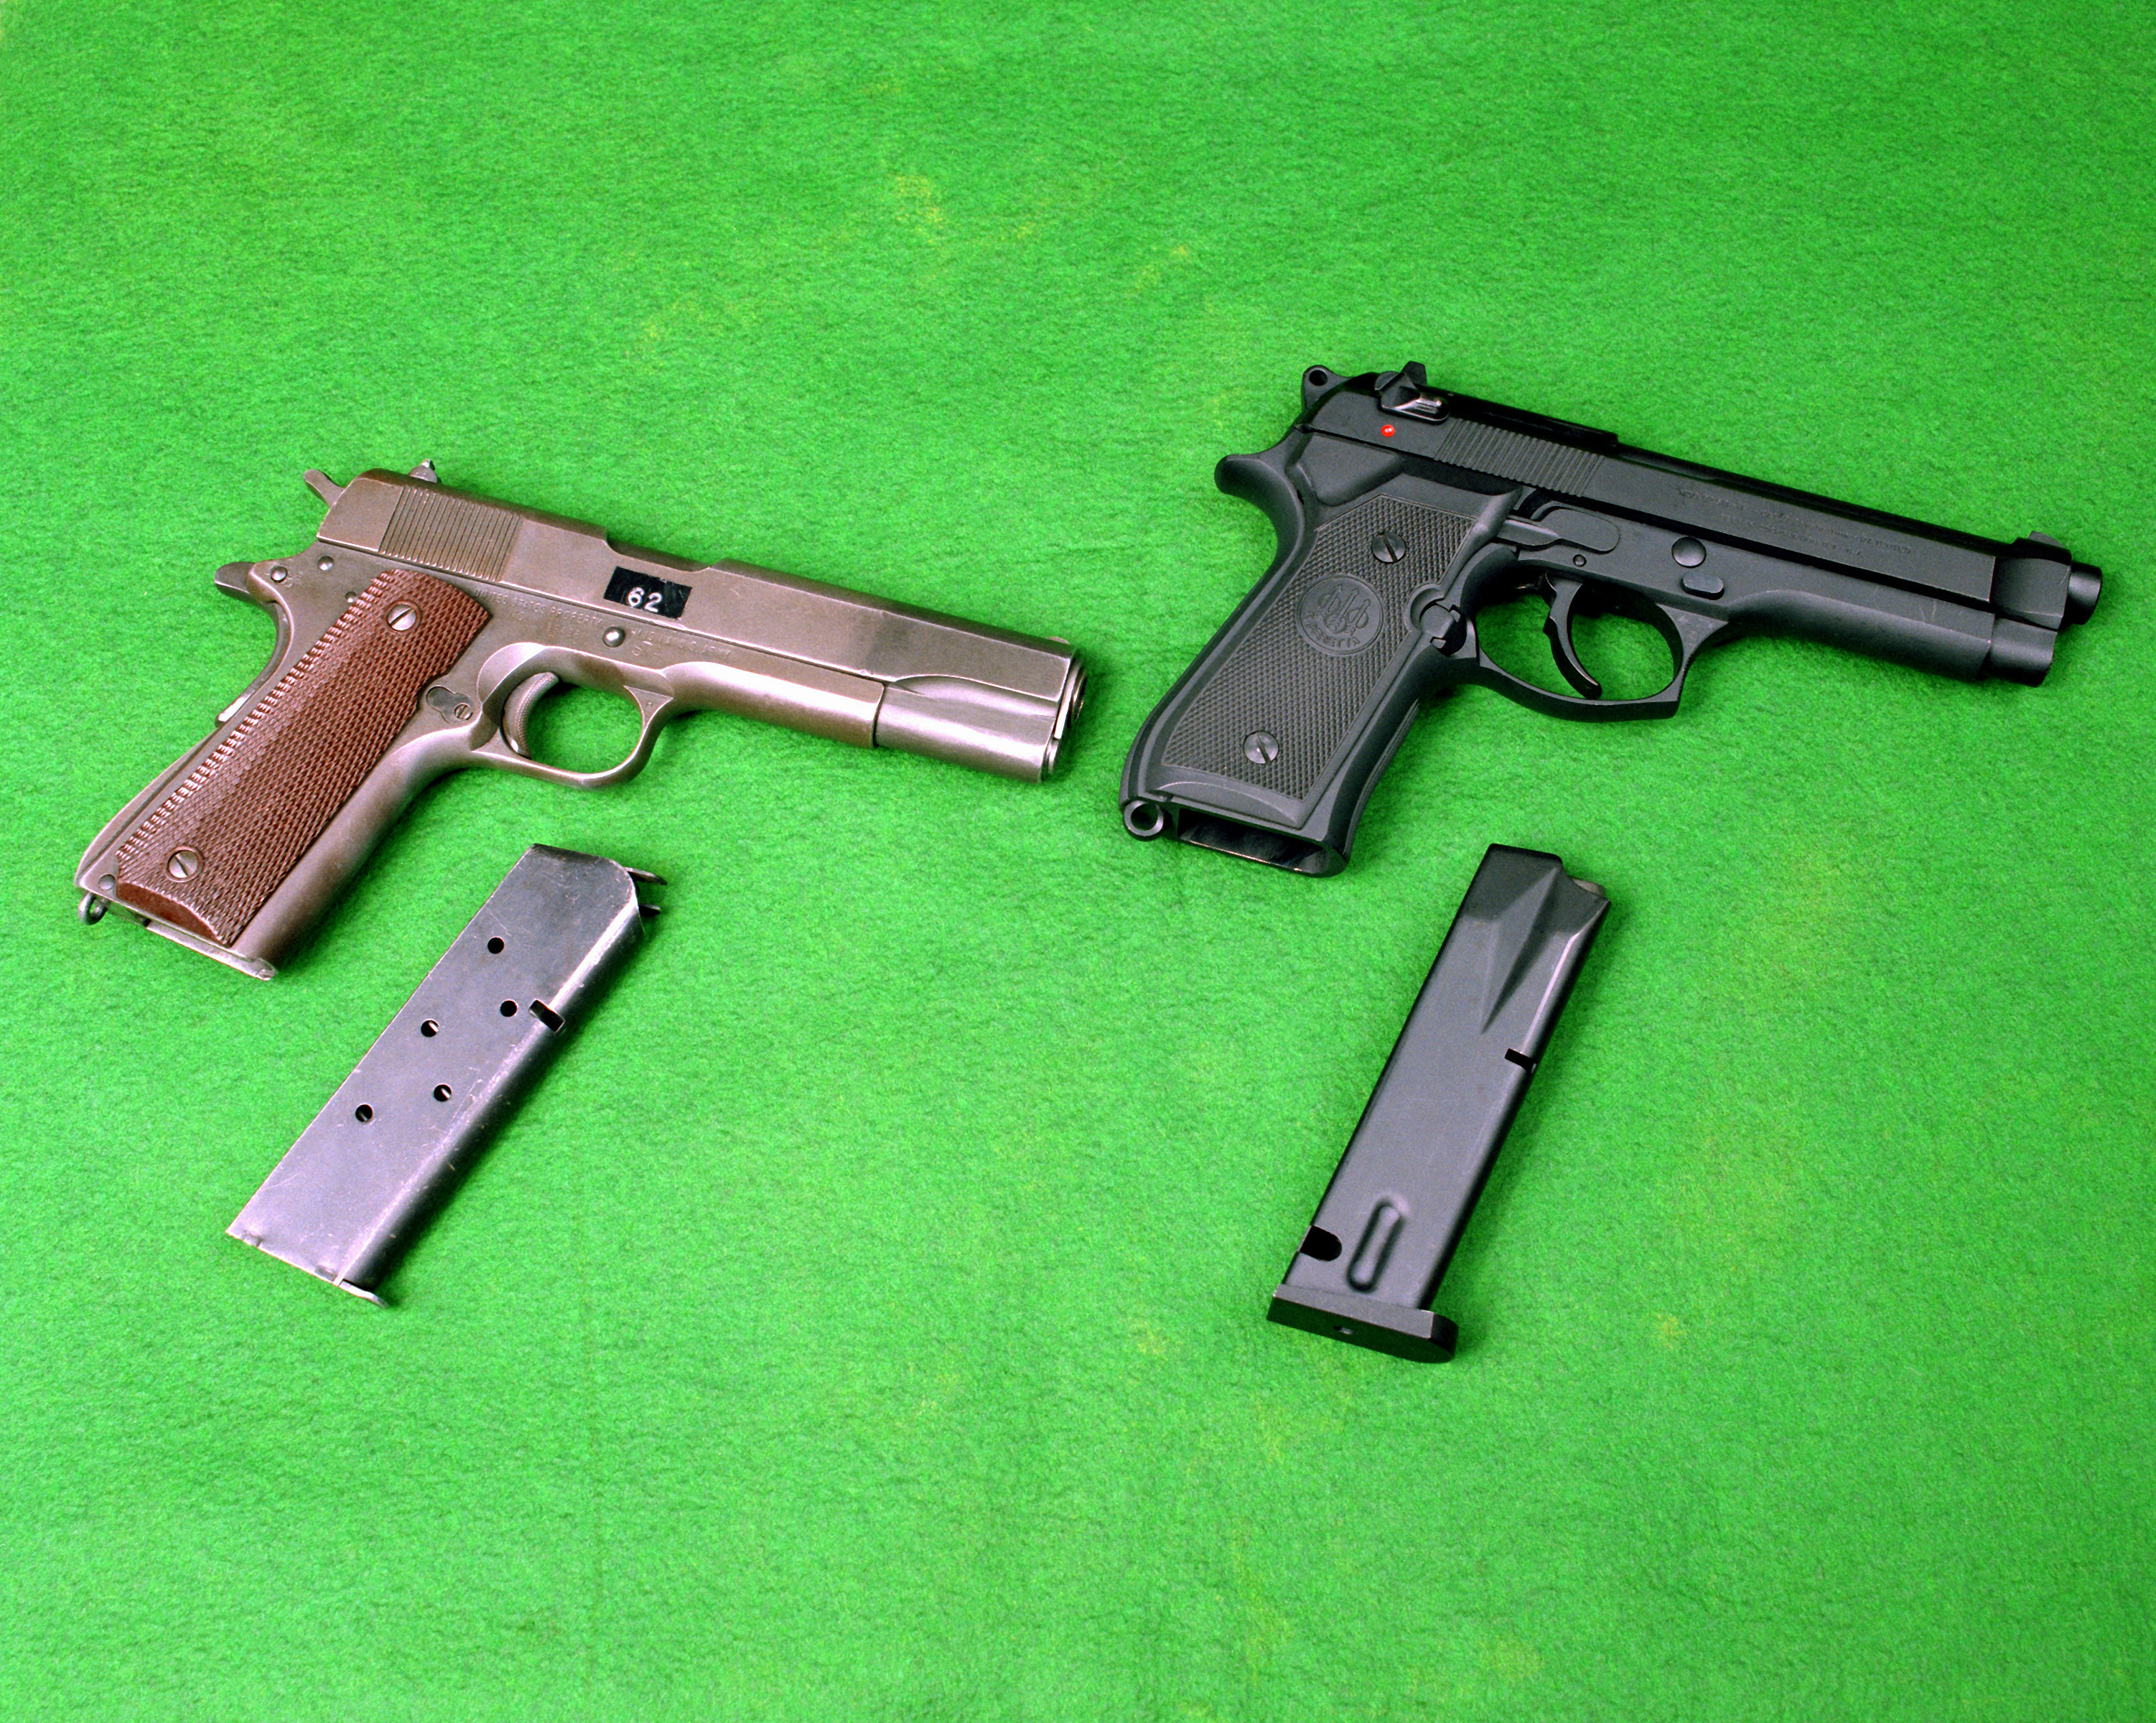 http://dic.academic.ru/pictures/wiki/files/77/M1911A1_and_M9_DA-SC-91-10188.jpg